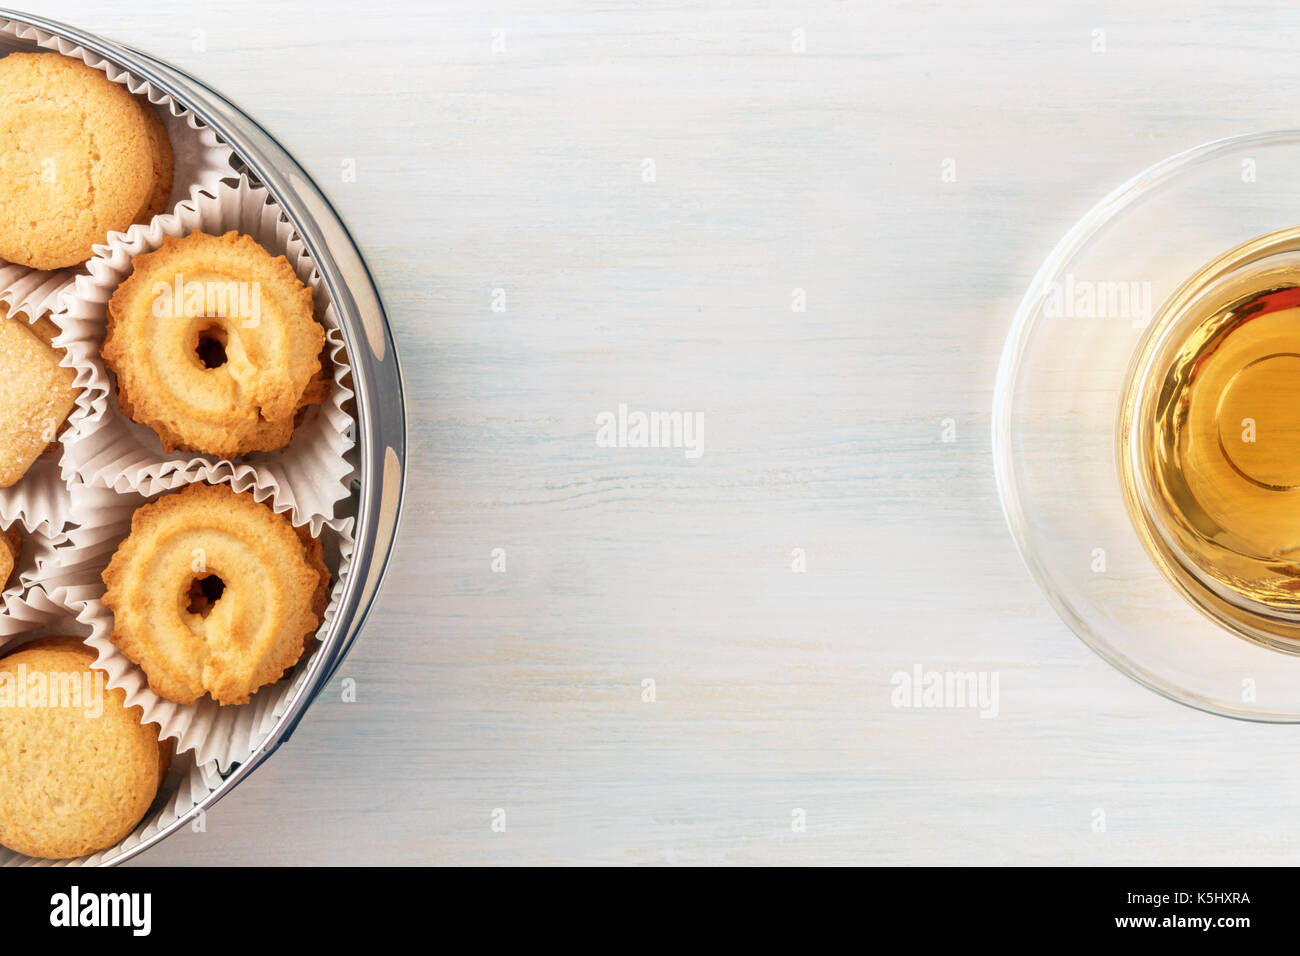 Overhead view of Danish butter cookies with tea and copyspace - Stock Image